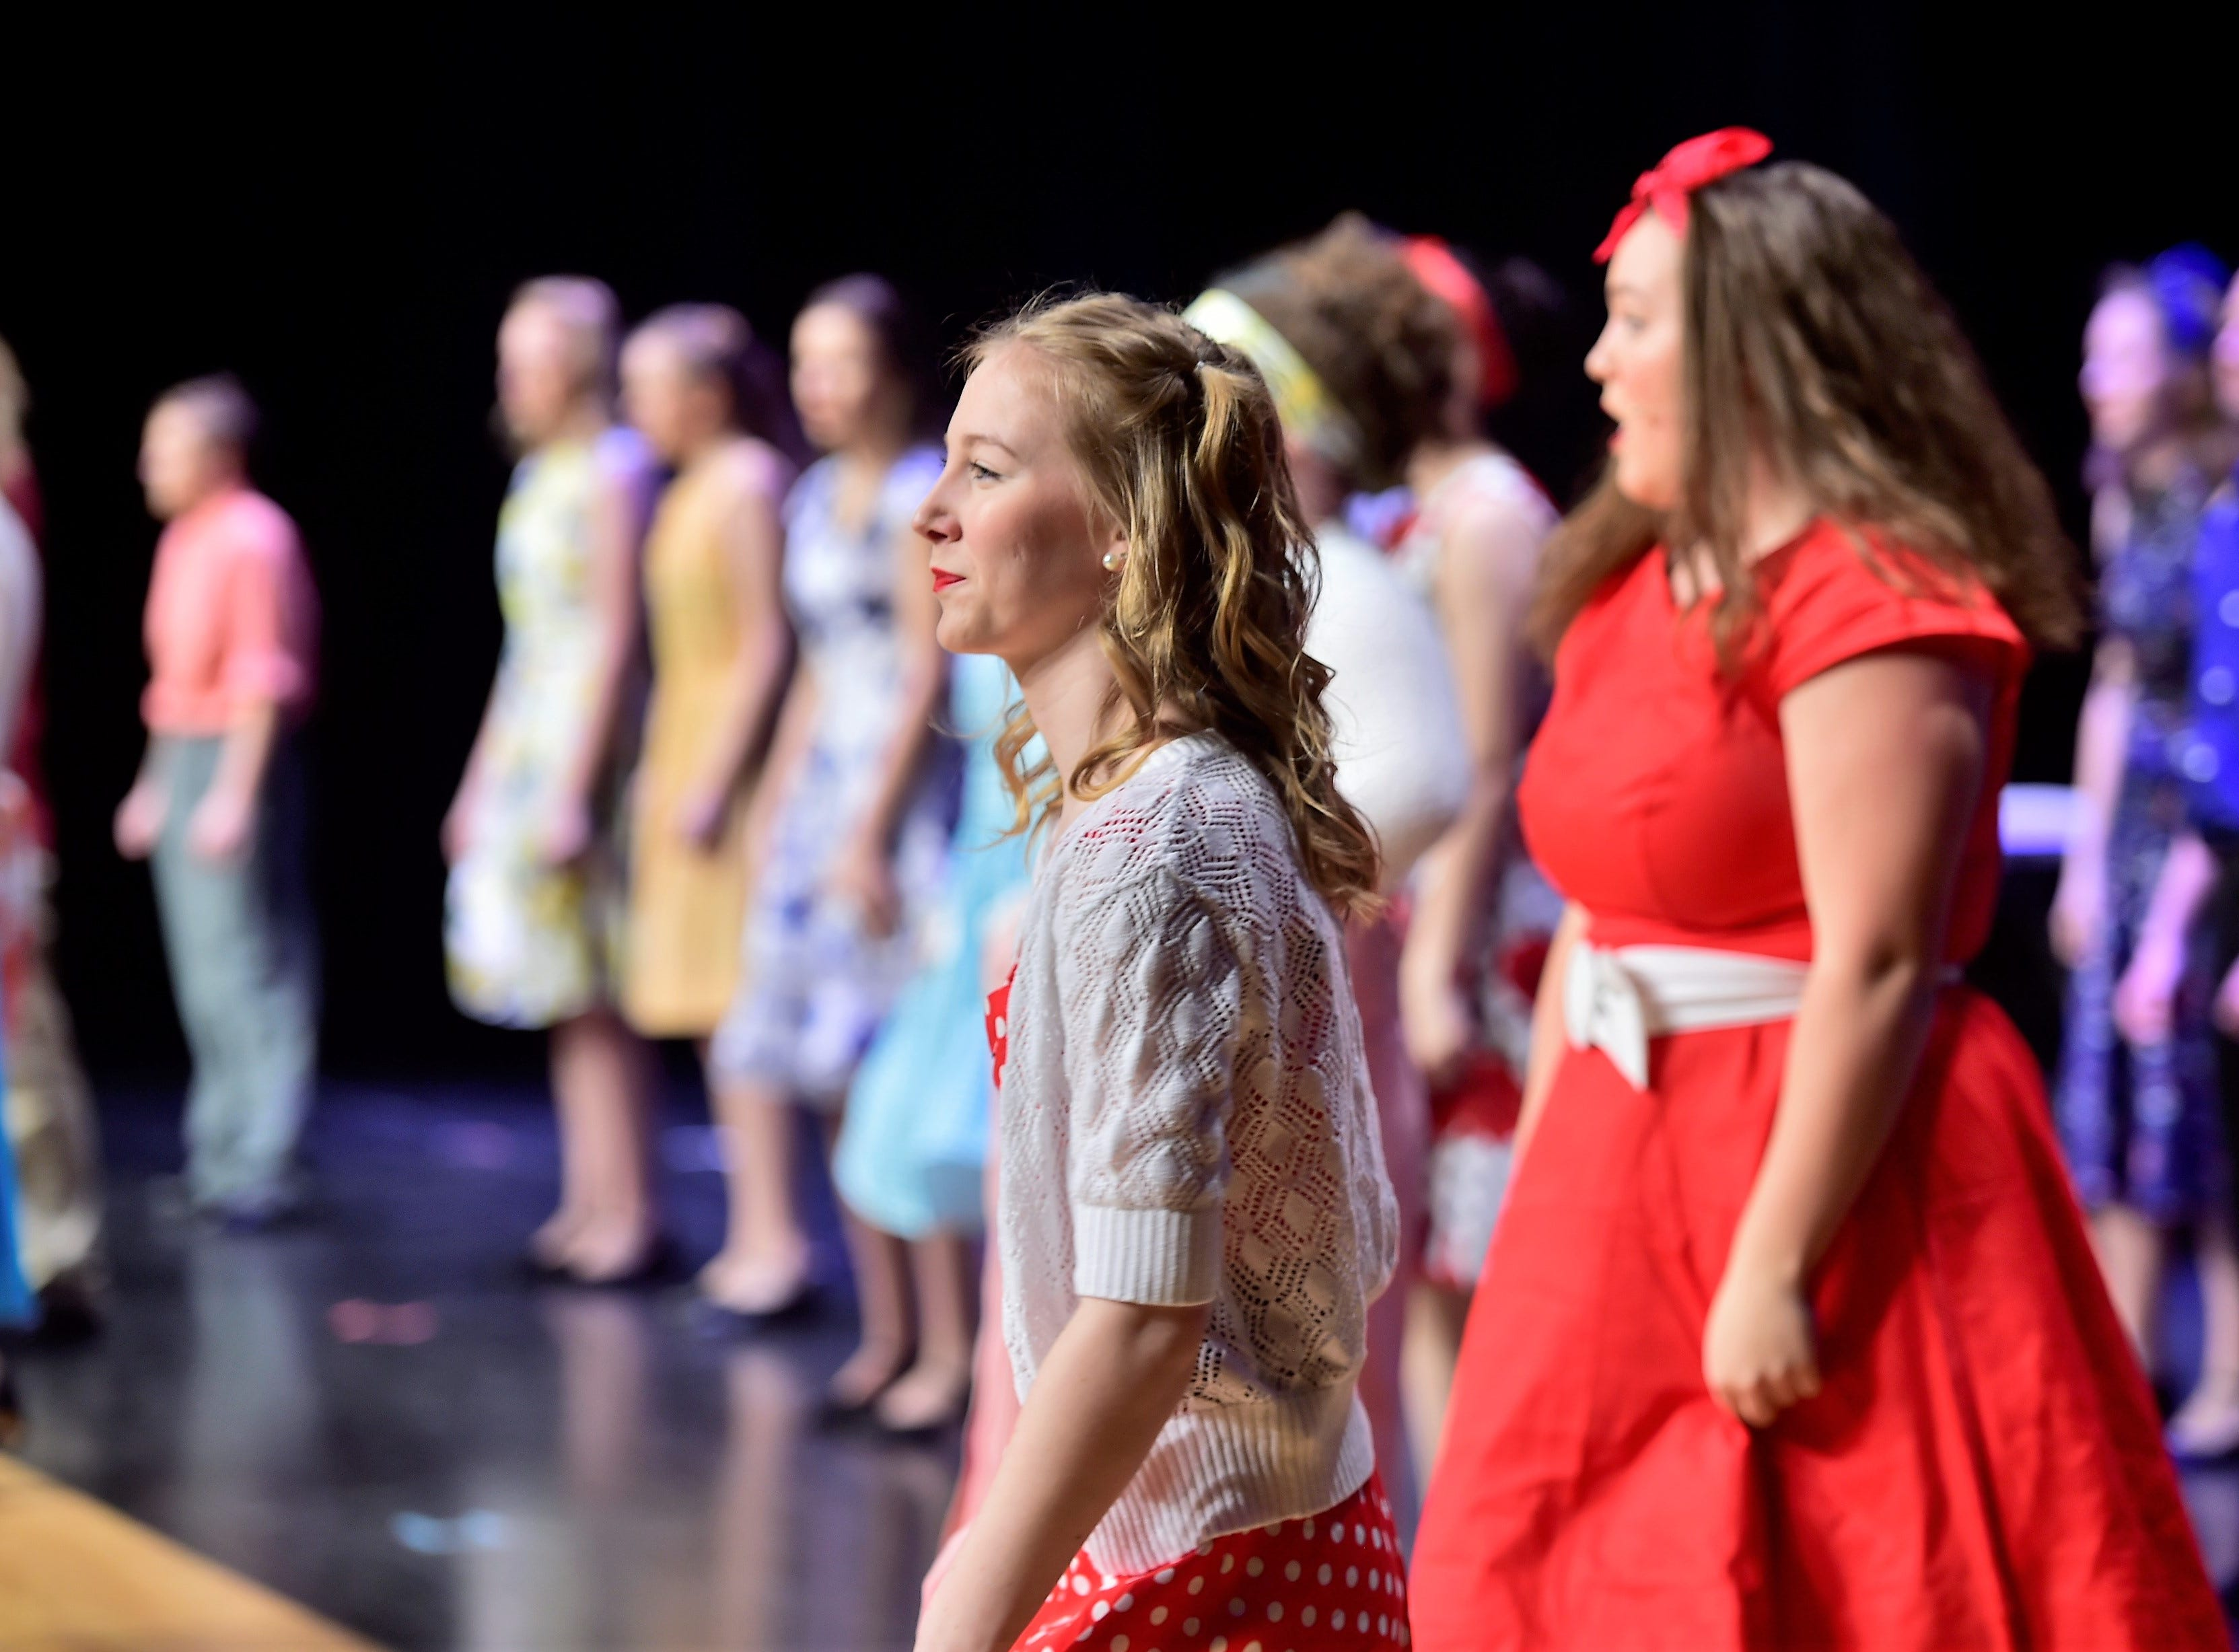 """Cast members rehearse a scene  from """"The Pajama Game,"""" on Sunday, March 10, 2019, at Waynesboro Area Senior High School. The musical, based on the 1953 novel, """"7 1/2 Cents"""" by Richard Bissell, tells the story of a pajama factory where workers are fighting for a raise of 7 1/2 cents. Showtimes for Waynesboro Area School District's All-School Production of """"The Pajama Game"""" are 7 p.m. Friday and Saturday, March 15 and 16, and 2 p.m. Sunday, March 17 in the high school auditorium. For choose-your-seat tickets, $10 for adults and $6 for children under 12, go to https://washsmusic.ticketleap.com/the-pajama-game/. General admission tickets will also be sold at the door."""